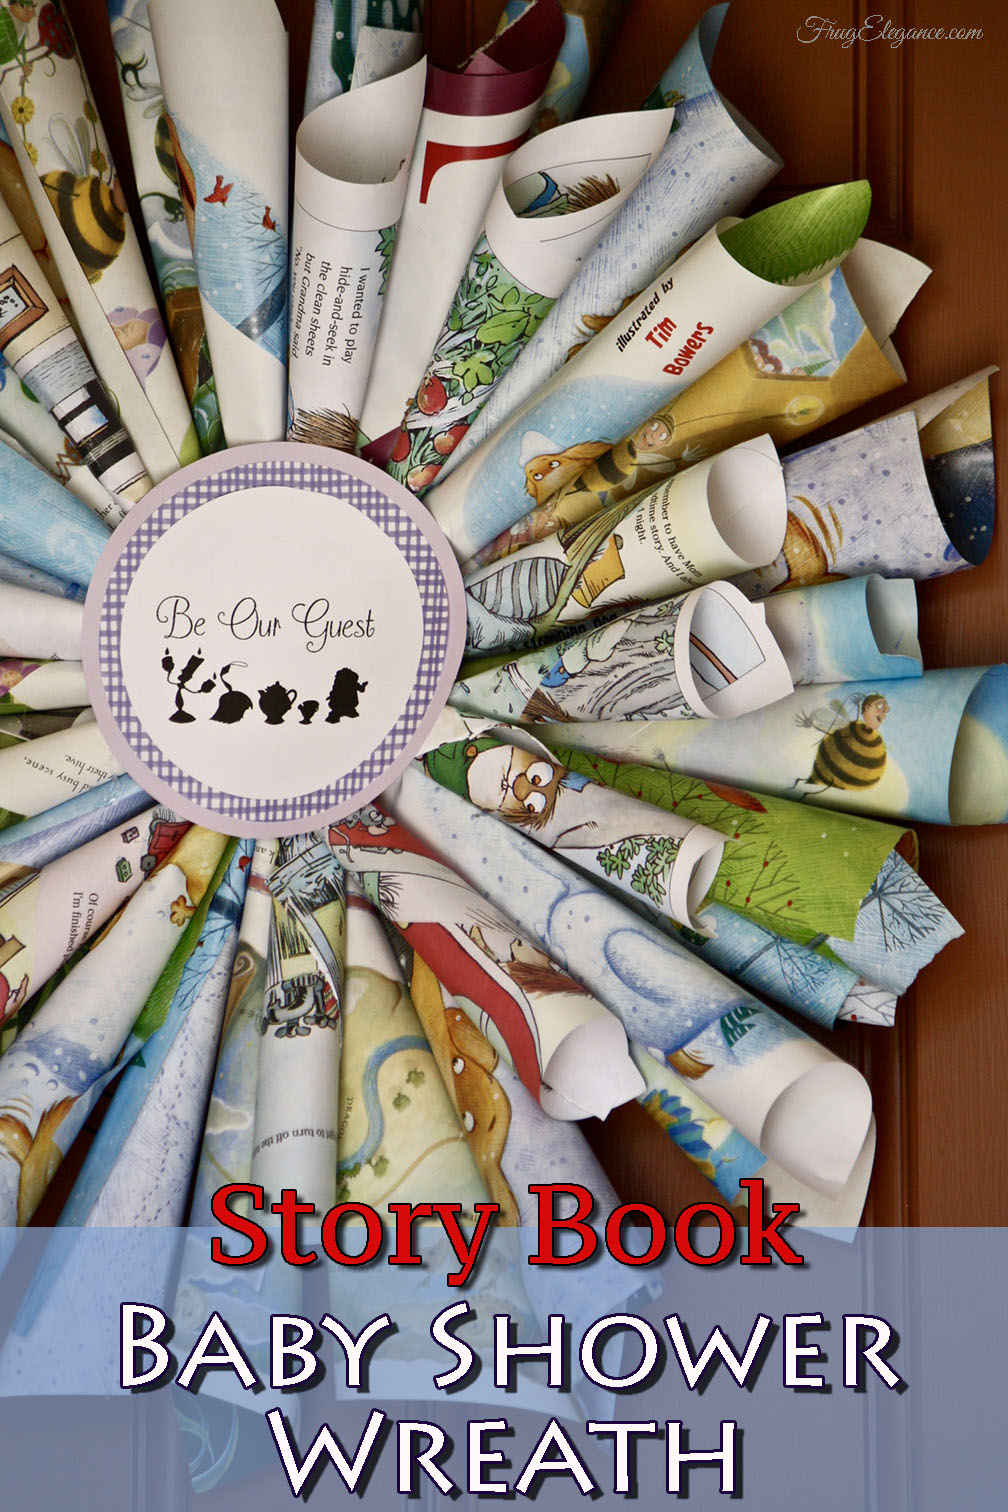 The Theme Is Childrenu0027s Story Books So What Better Way To Welcome Guests  Than With A Story Book Baby Shower Wreath That Uses The Actual Pages From  Old ...